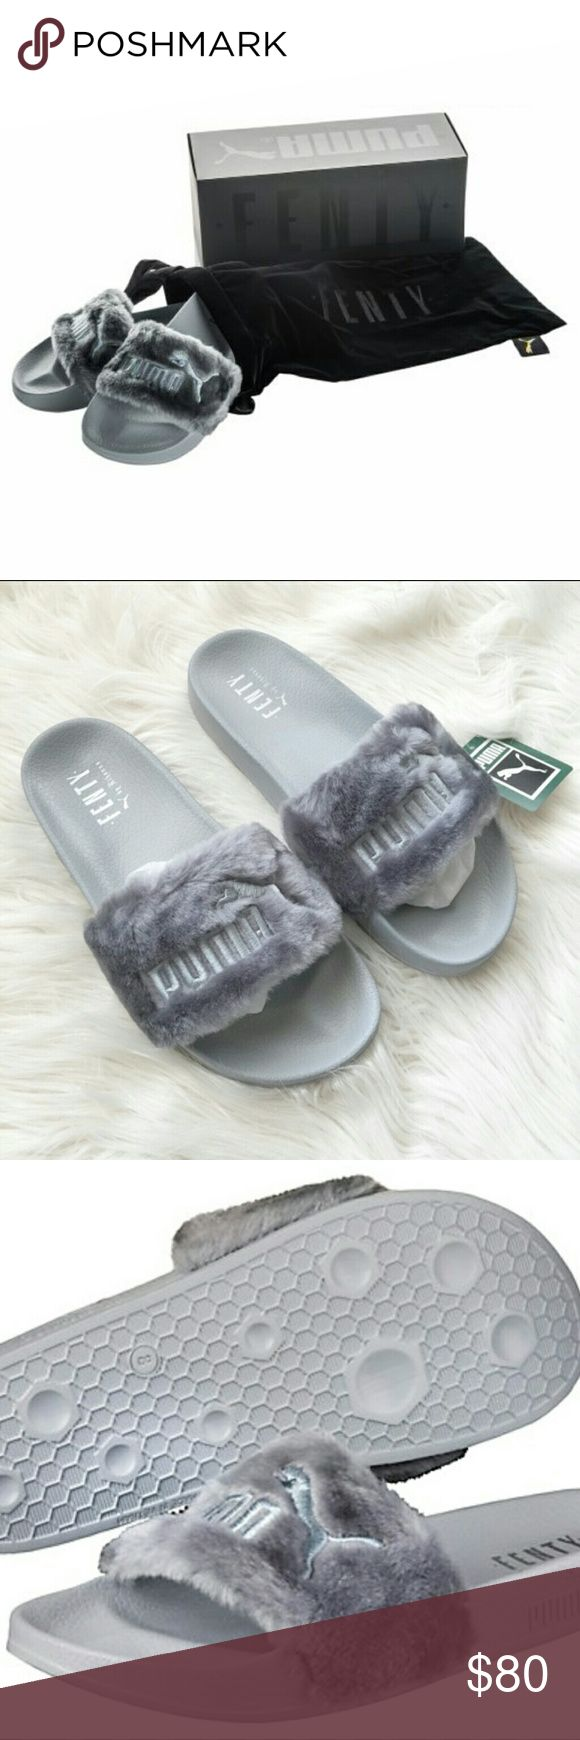 Grey Fenty Fur Slides Grey puma fenty fur slides *Box NOT included **Comes with Black velvet Fenty dust bag  Unopened Brand new in puma bag Reasonable offers welcome:) negotiable by $10 only due to seller fee. *Bundle to save on shipping Shoes